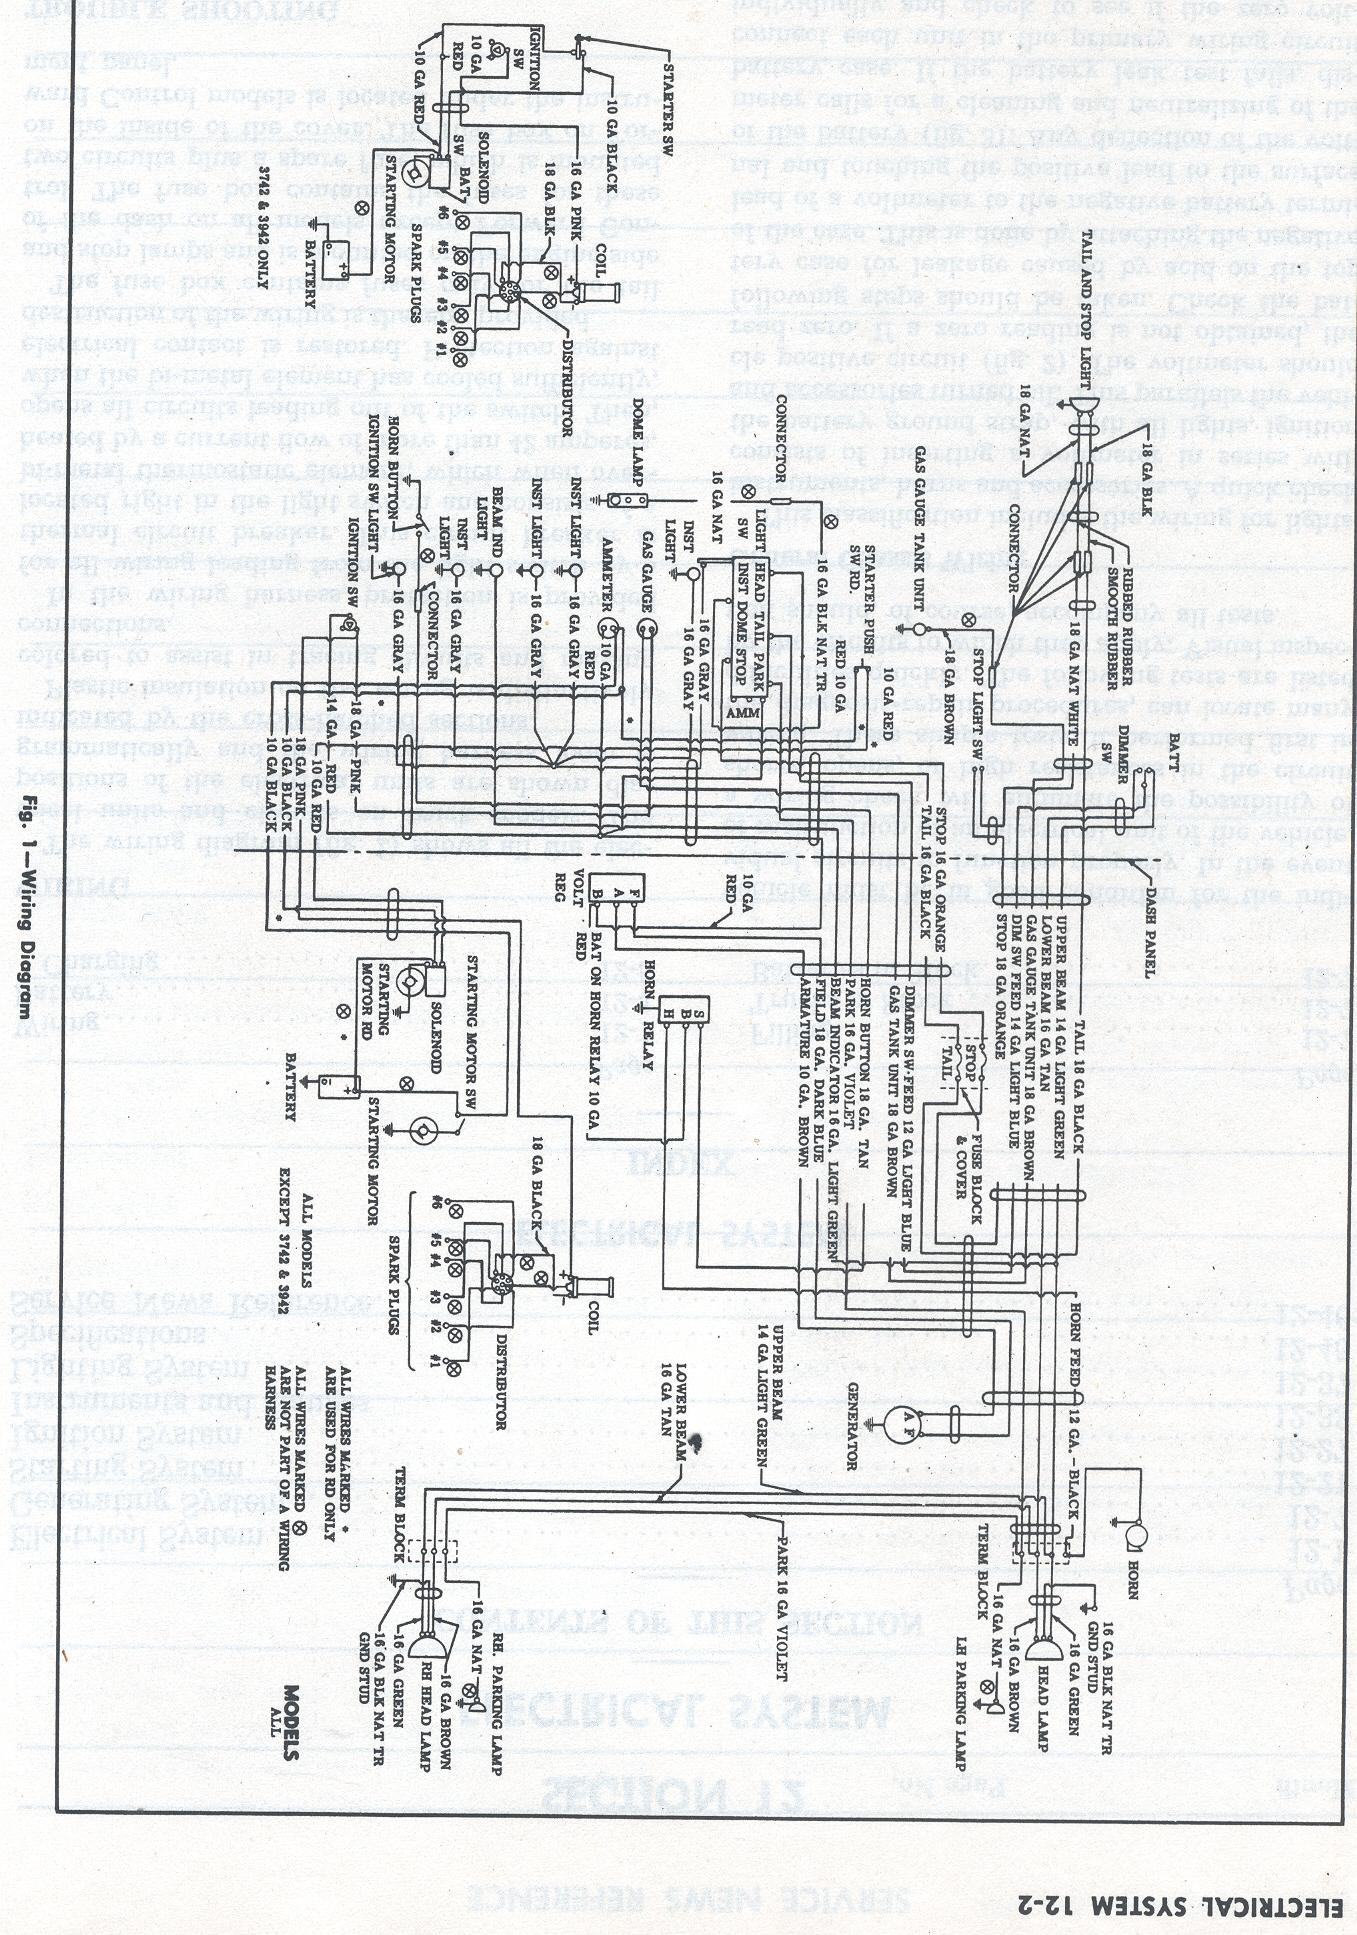 M715 Wiring Diagram Online Schematics M151a2 19 Images Diagrams